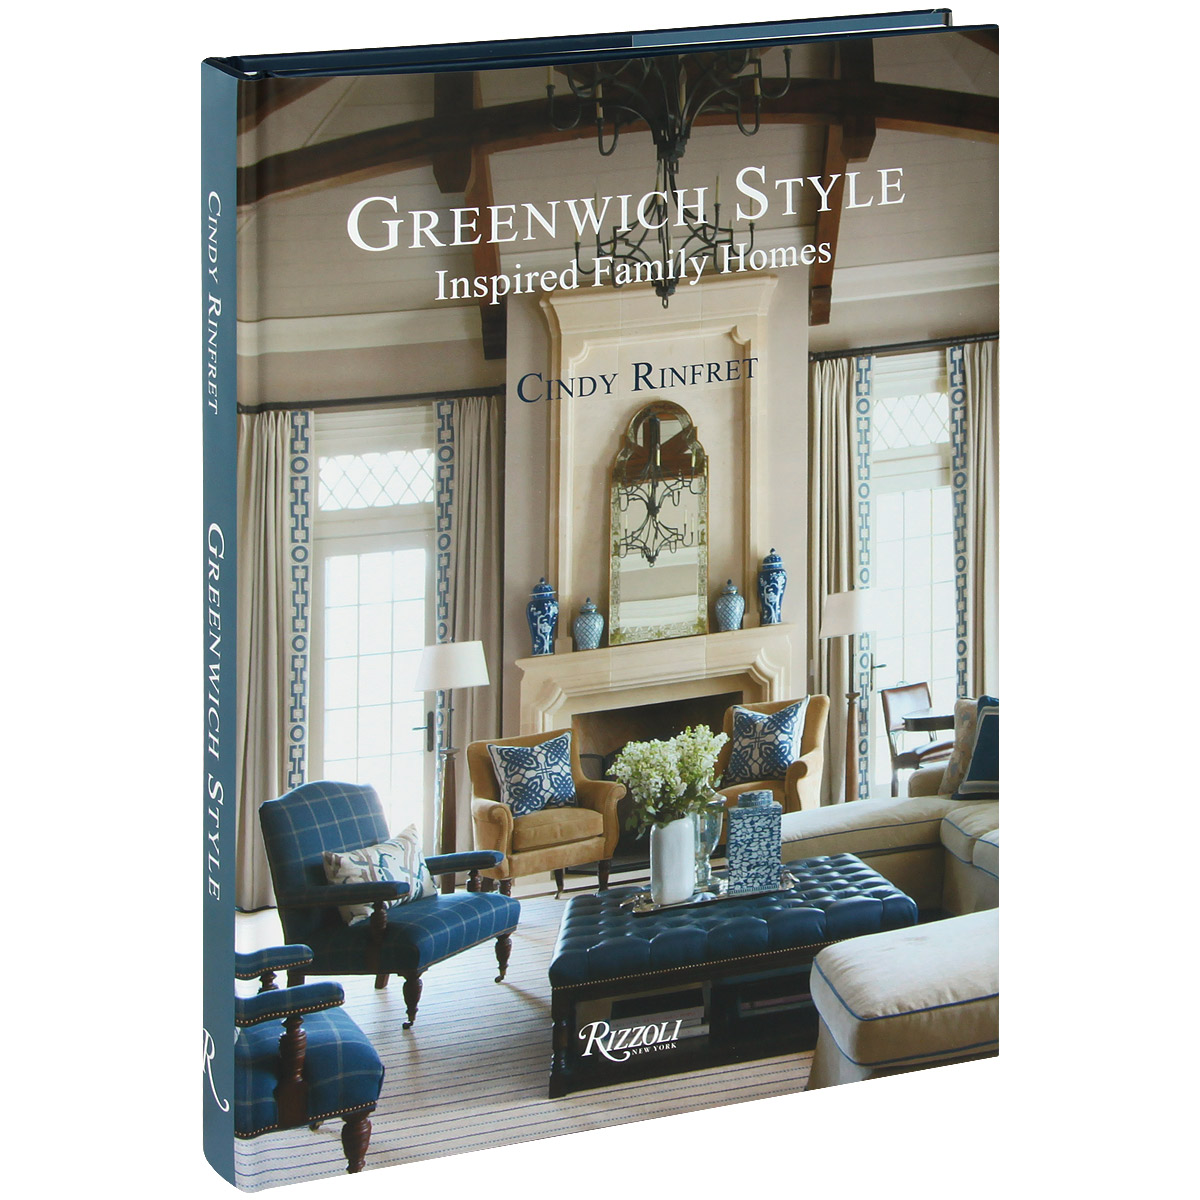 Greenwich Style: Inspired Family Homes the family way